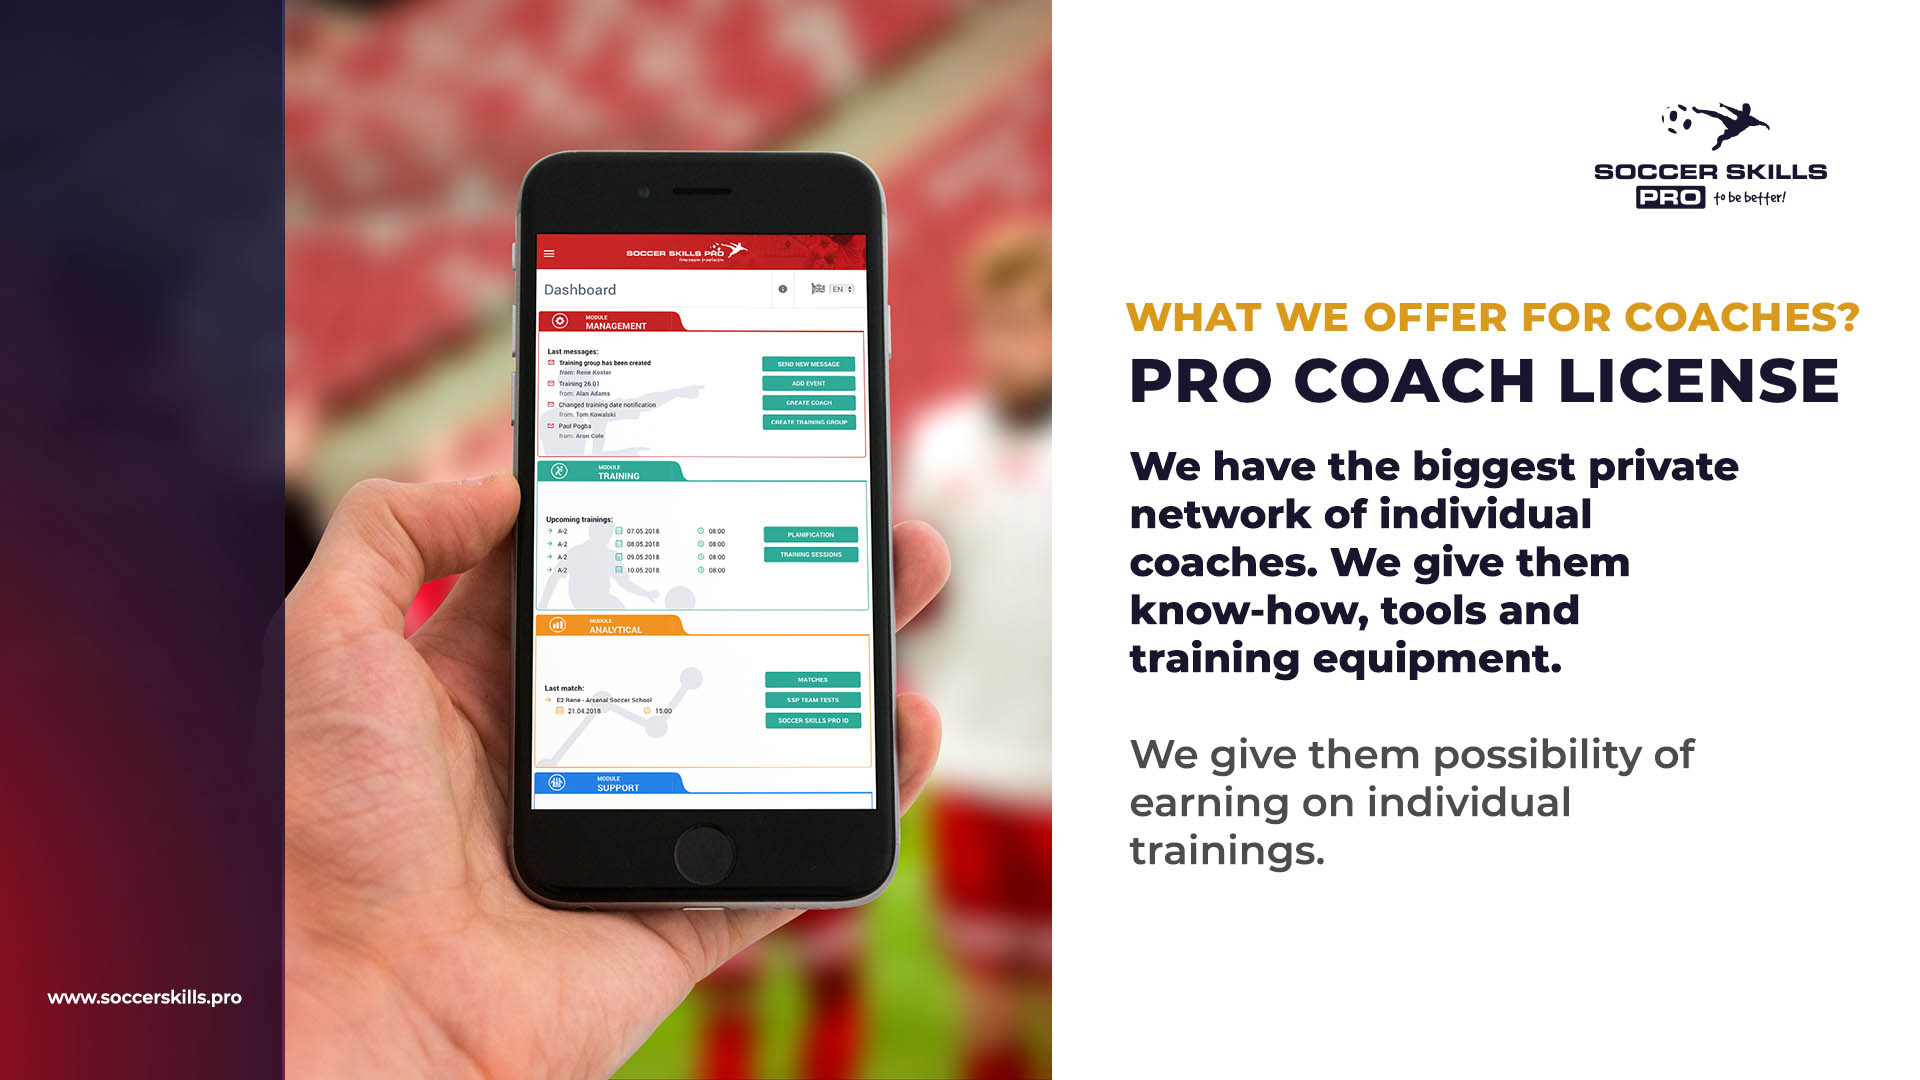 Soccer Skills PRO coach license